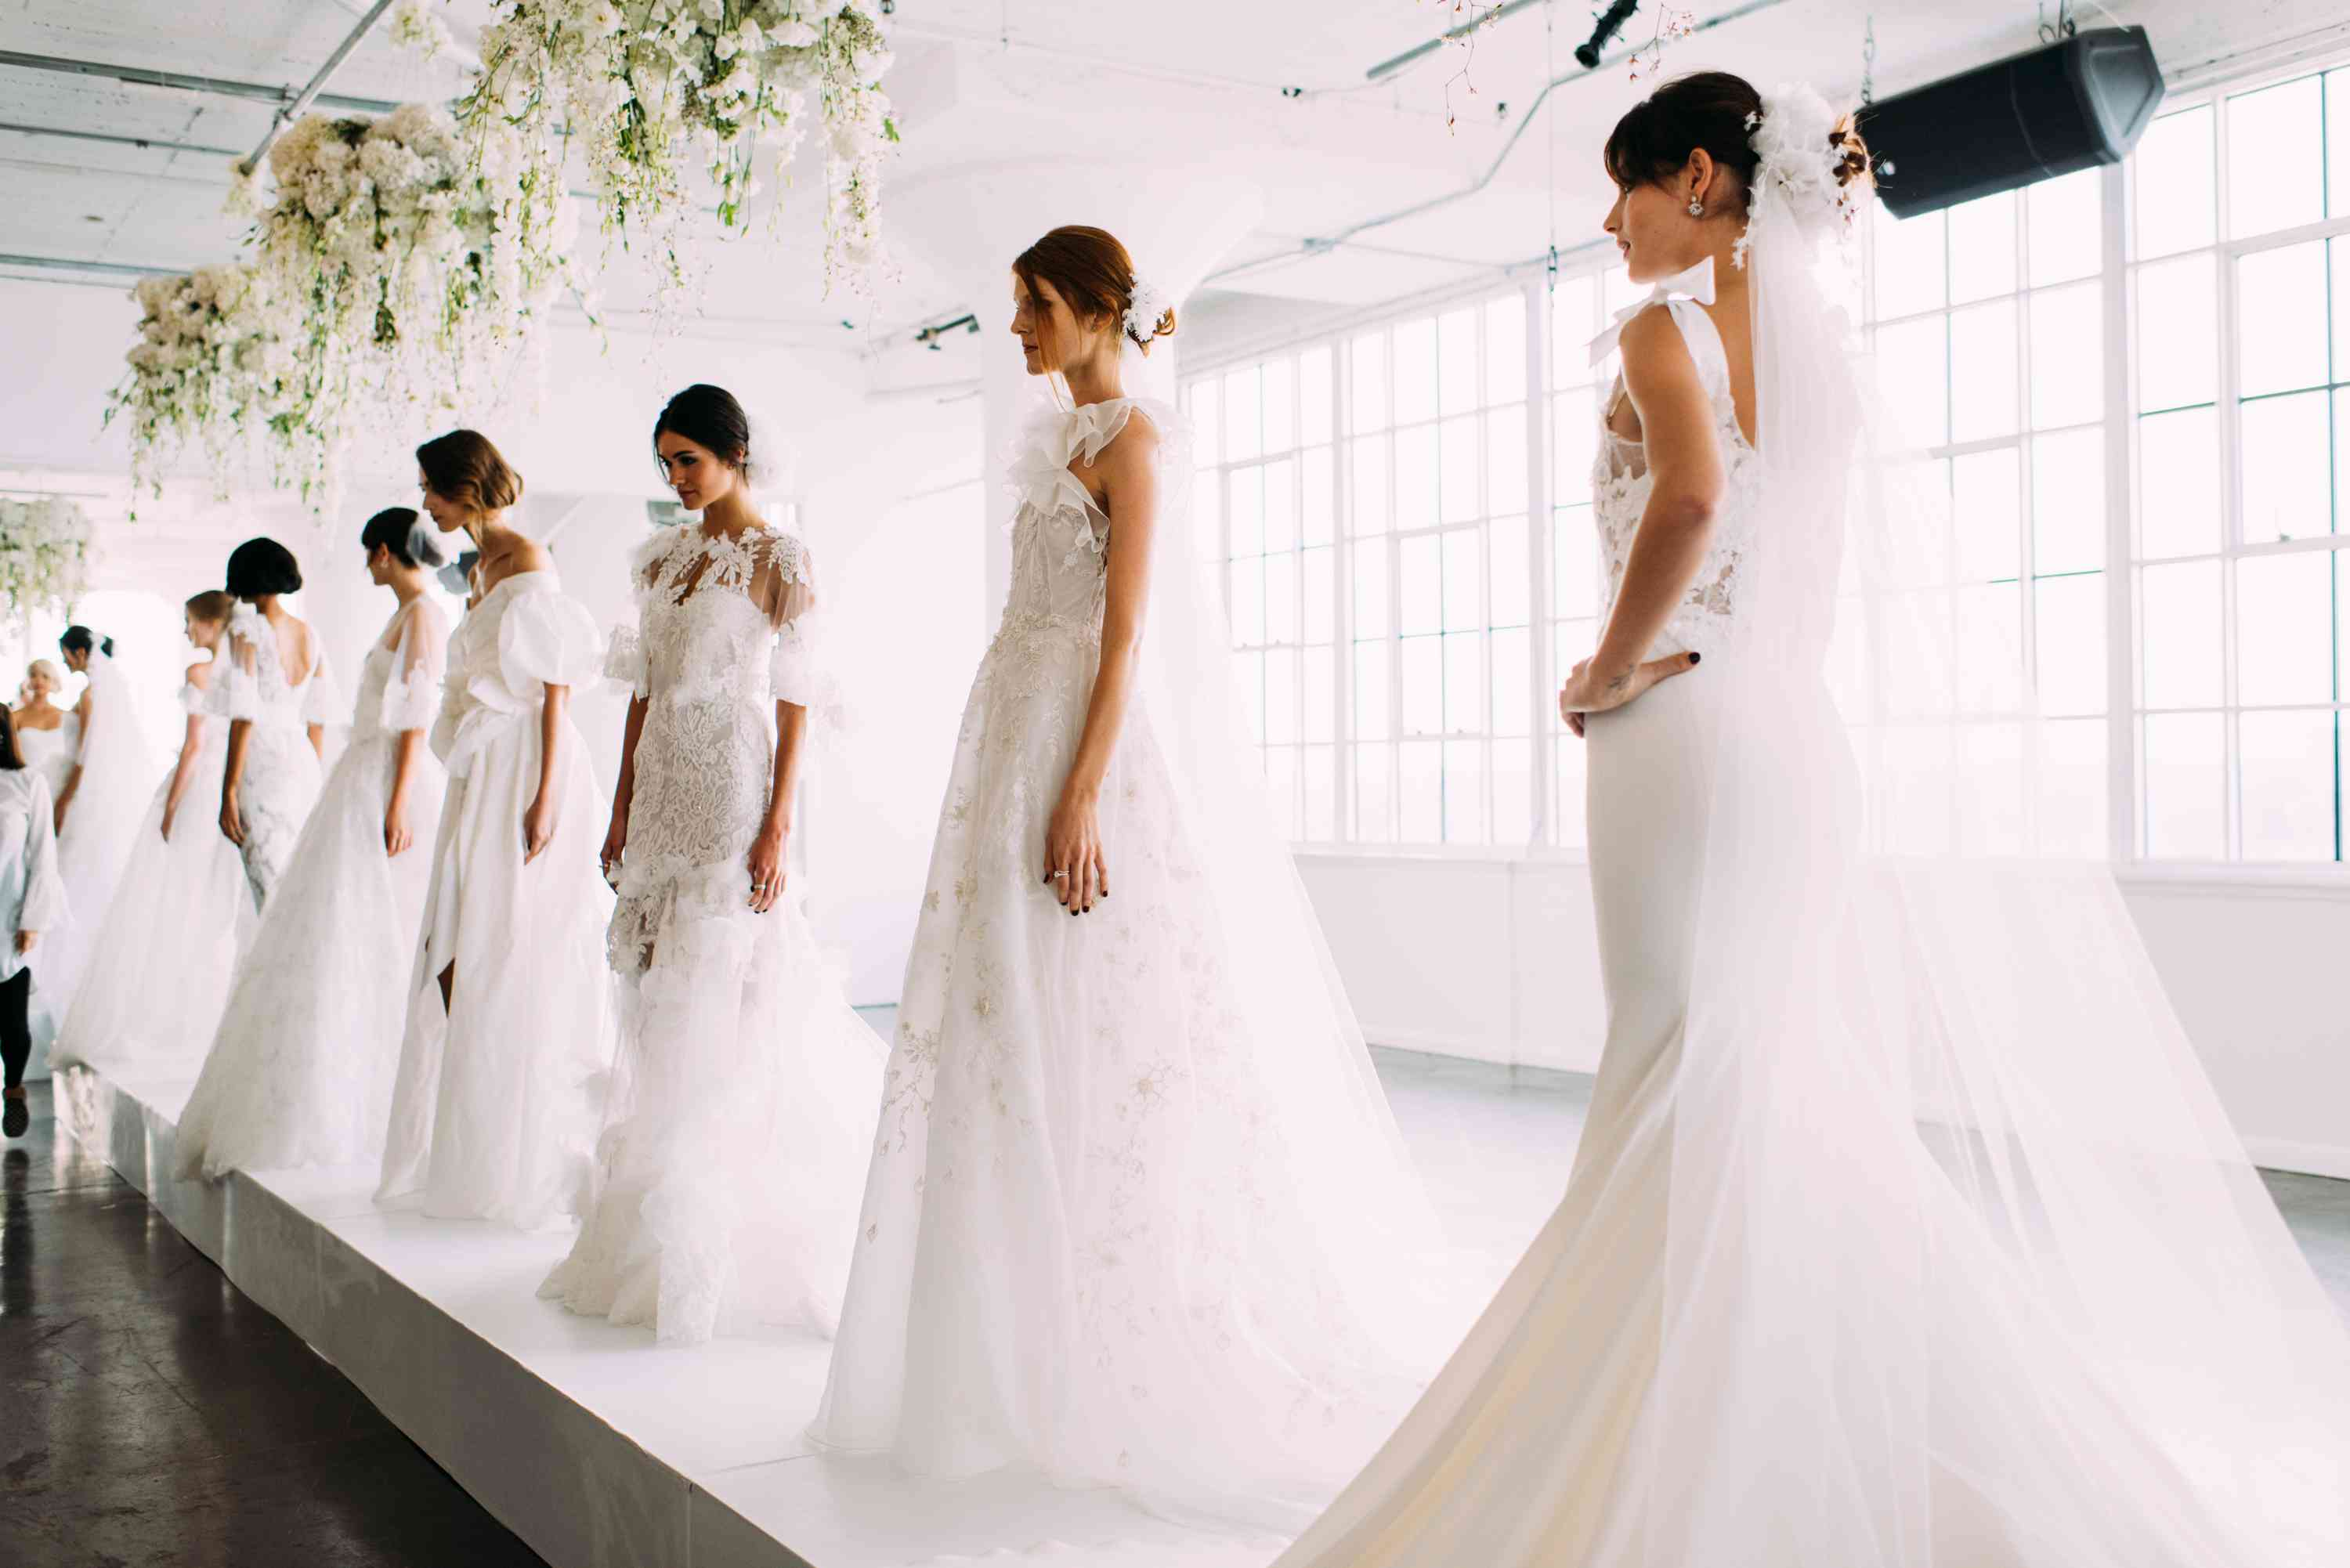 How To Choose Your Dream Wedding Dress 70 Things To Know,Designer Wedding Dresses Rent In Islamabad